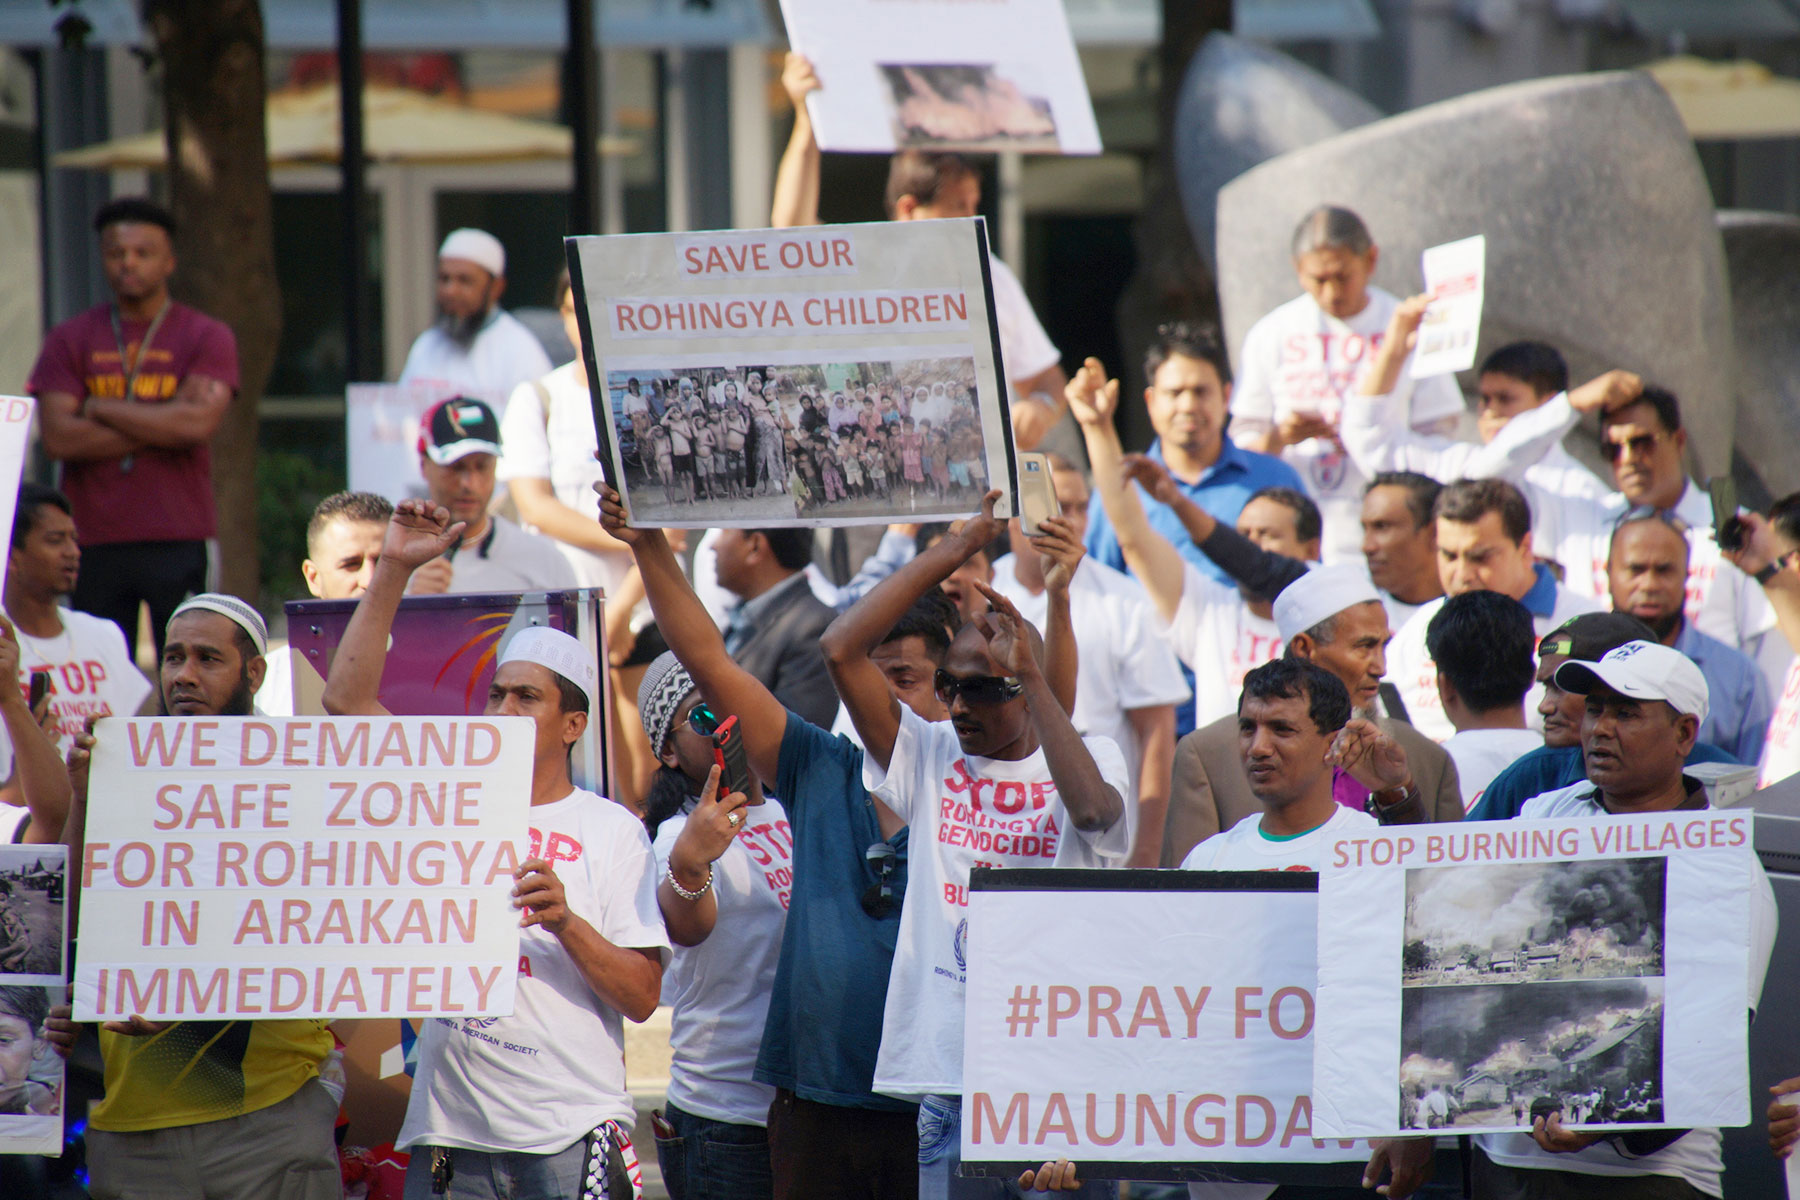 091517_rohingyaprotest_363